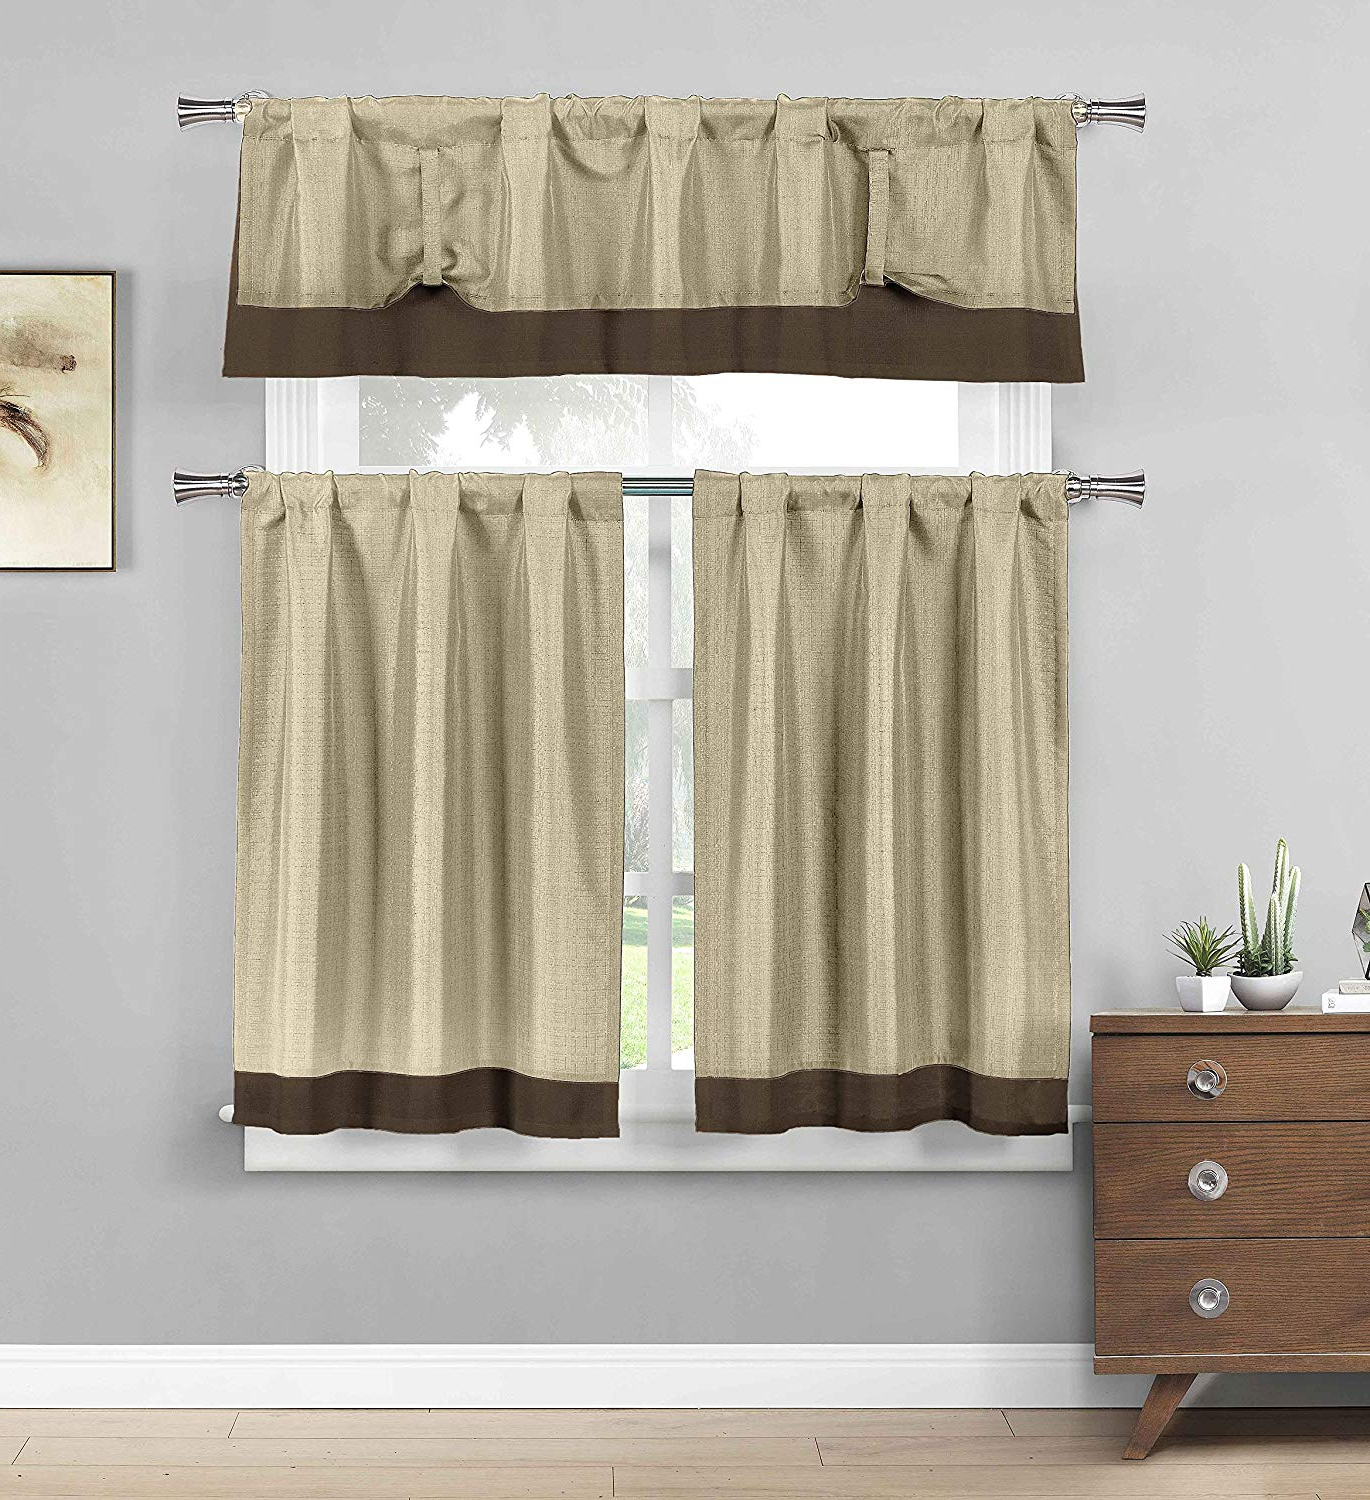 Most Recent Bathroom And More Three Piece Kitchen/cafe Tier Window Curtain Set: Chocolate Brown Border Accent (Linen) With Regard To Solid Microfiber 3 Piece Kitchen Curtain Valance And Tiers Sets (Gallery 6 of 20)